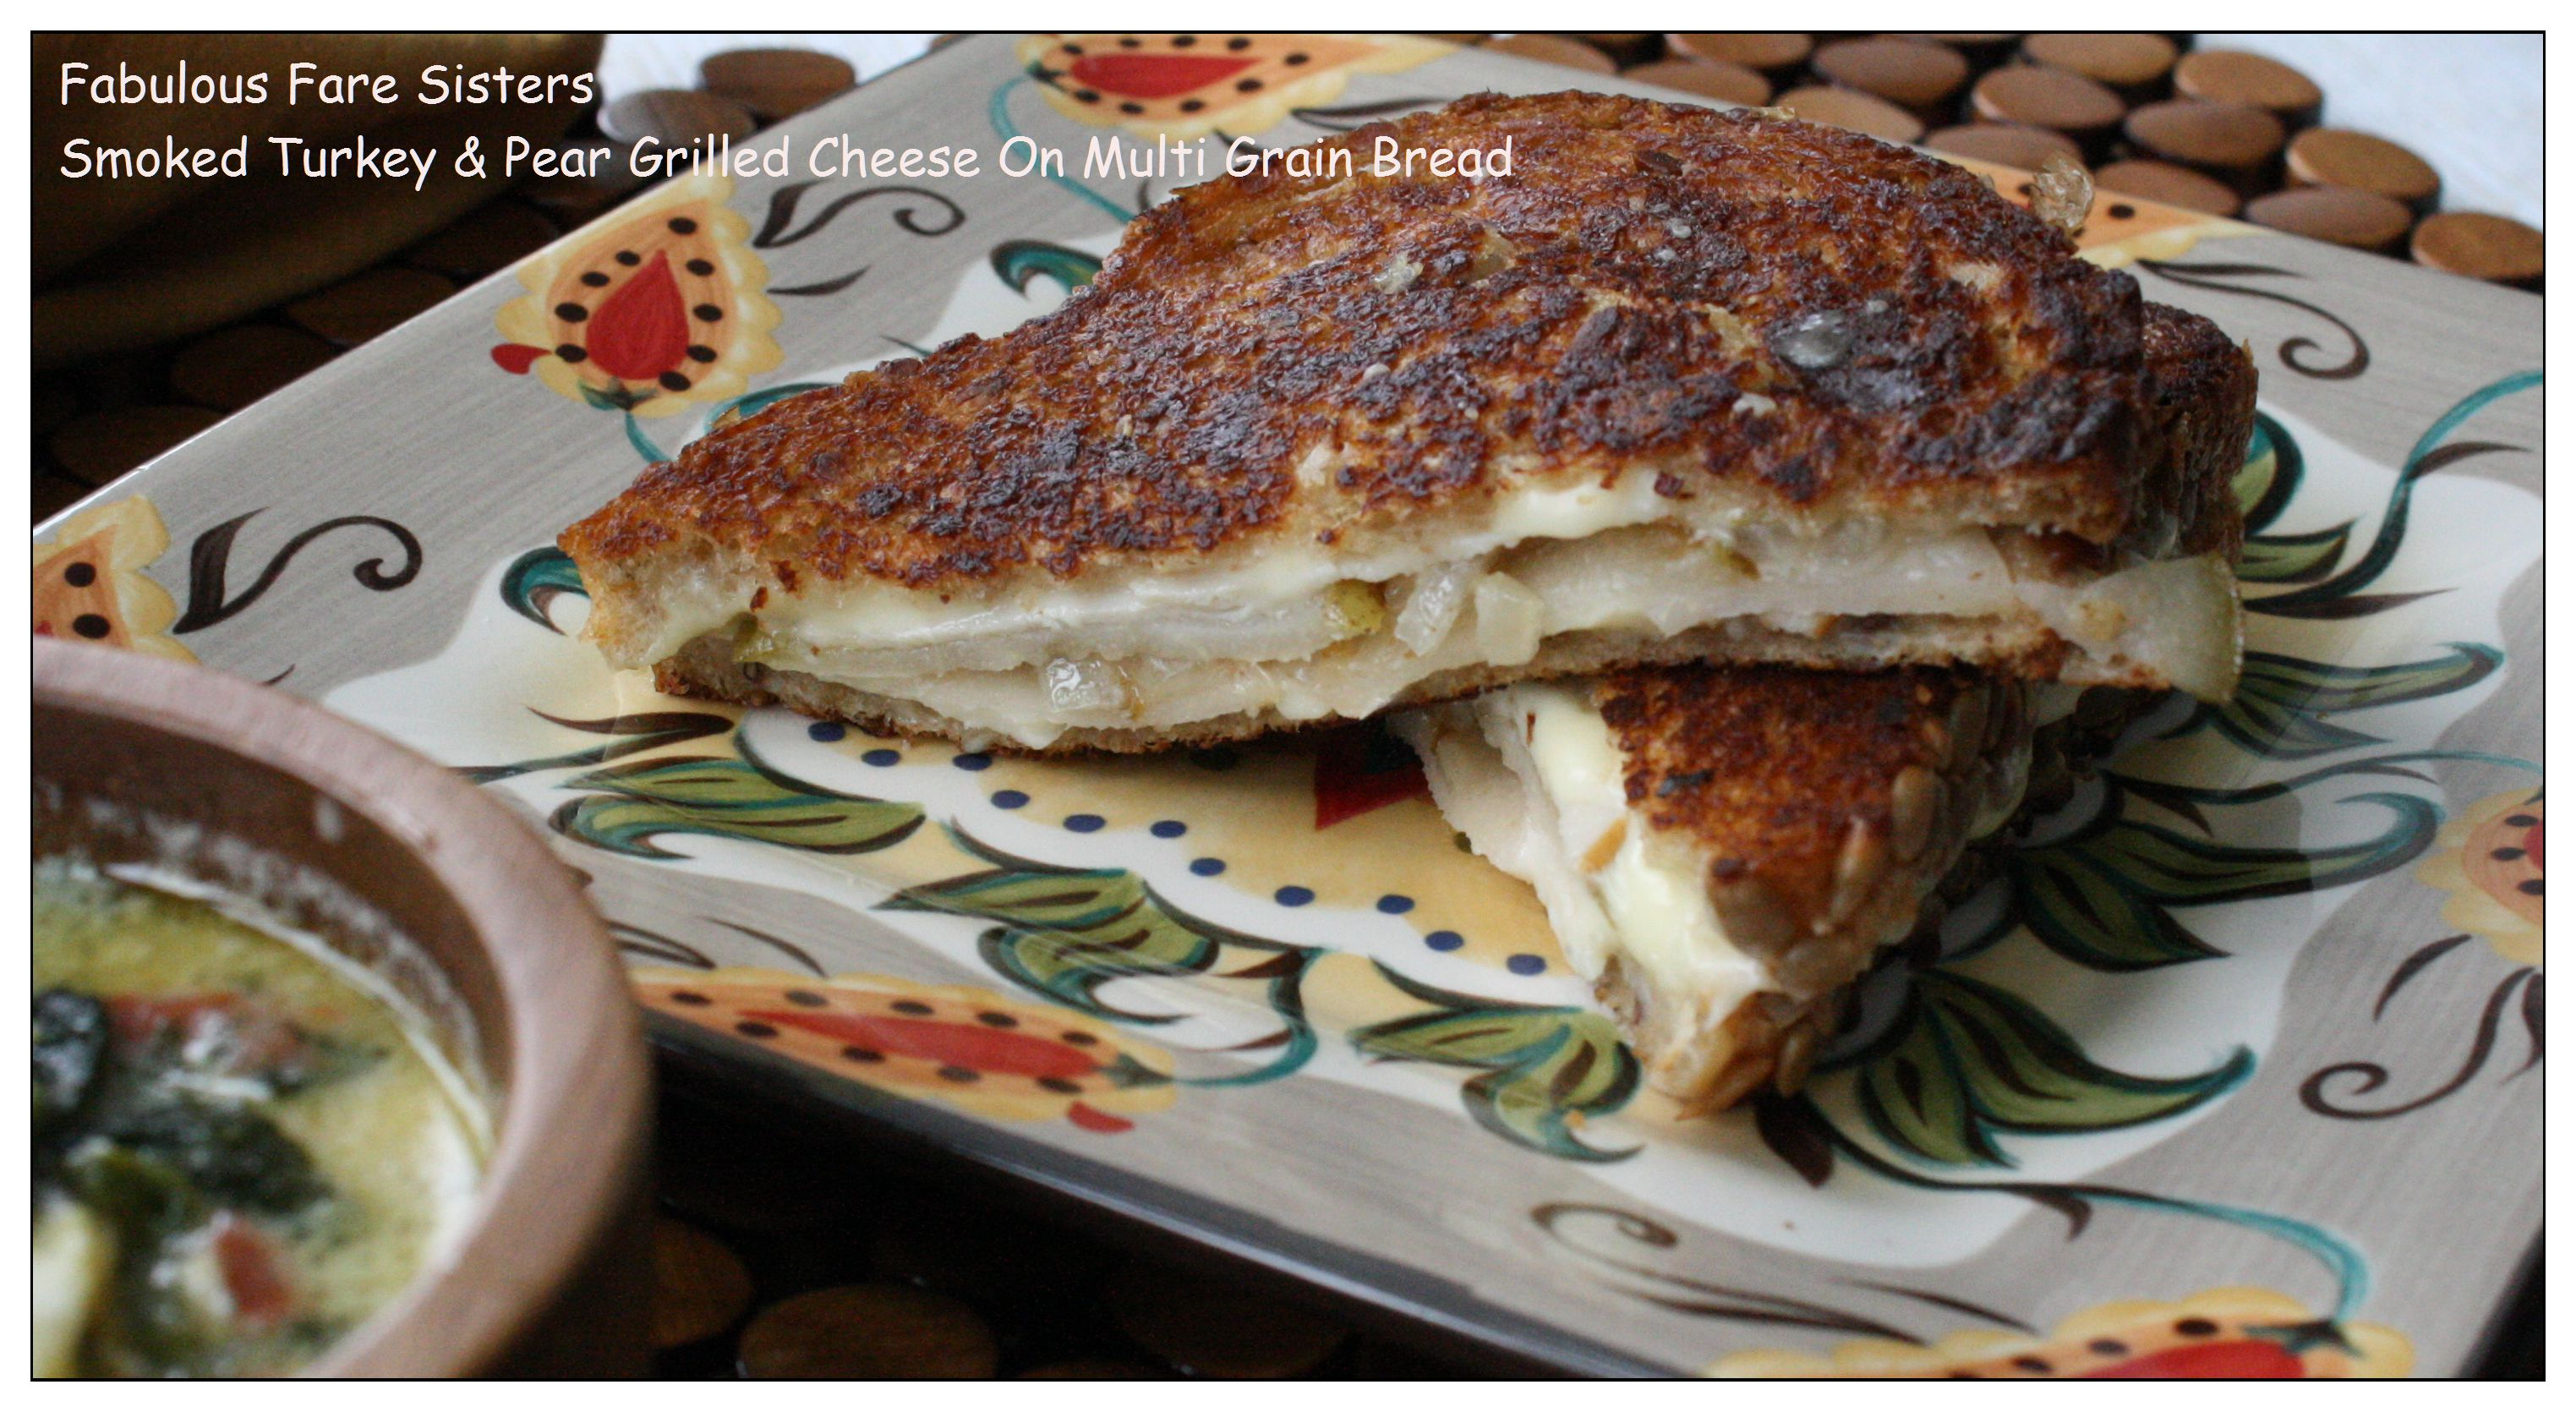 Smoked Turkey & Pear Grilled Cheese On Multi Grain Bread 4